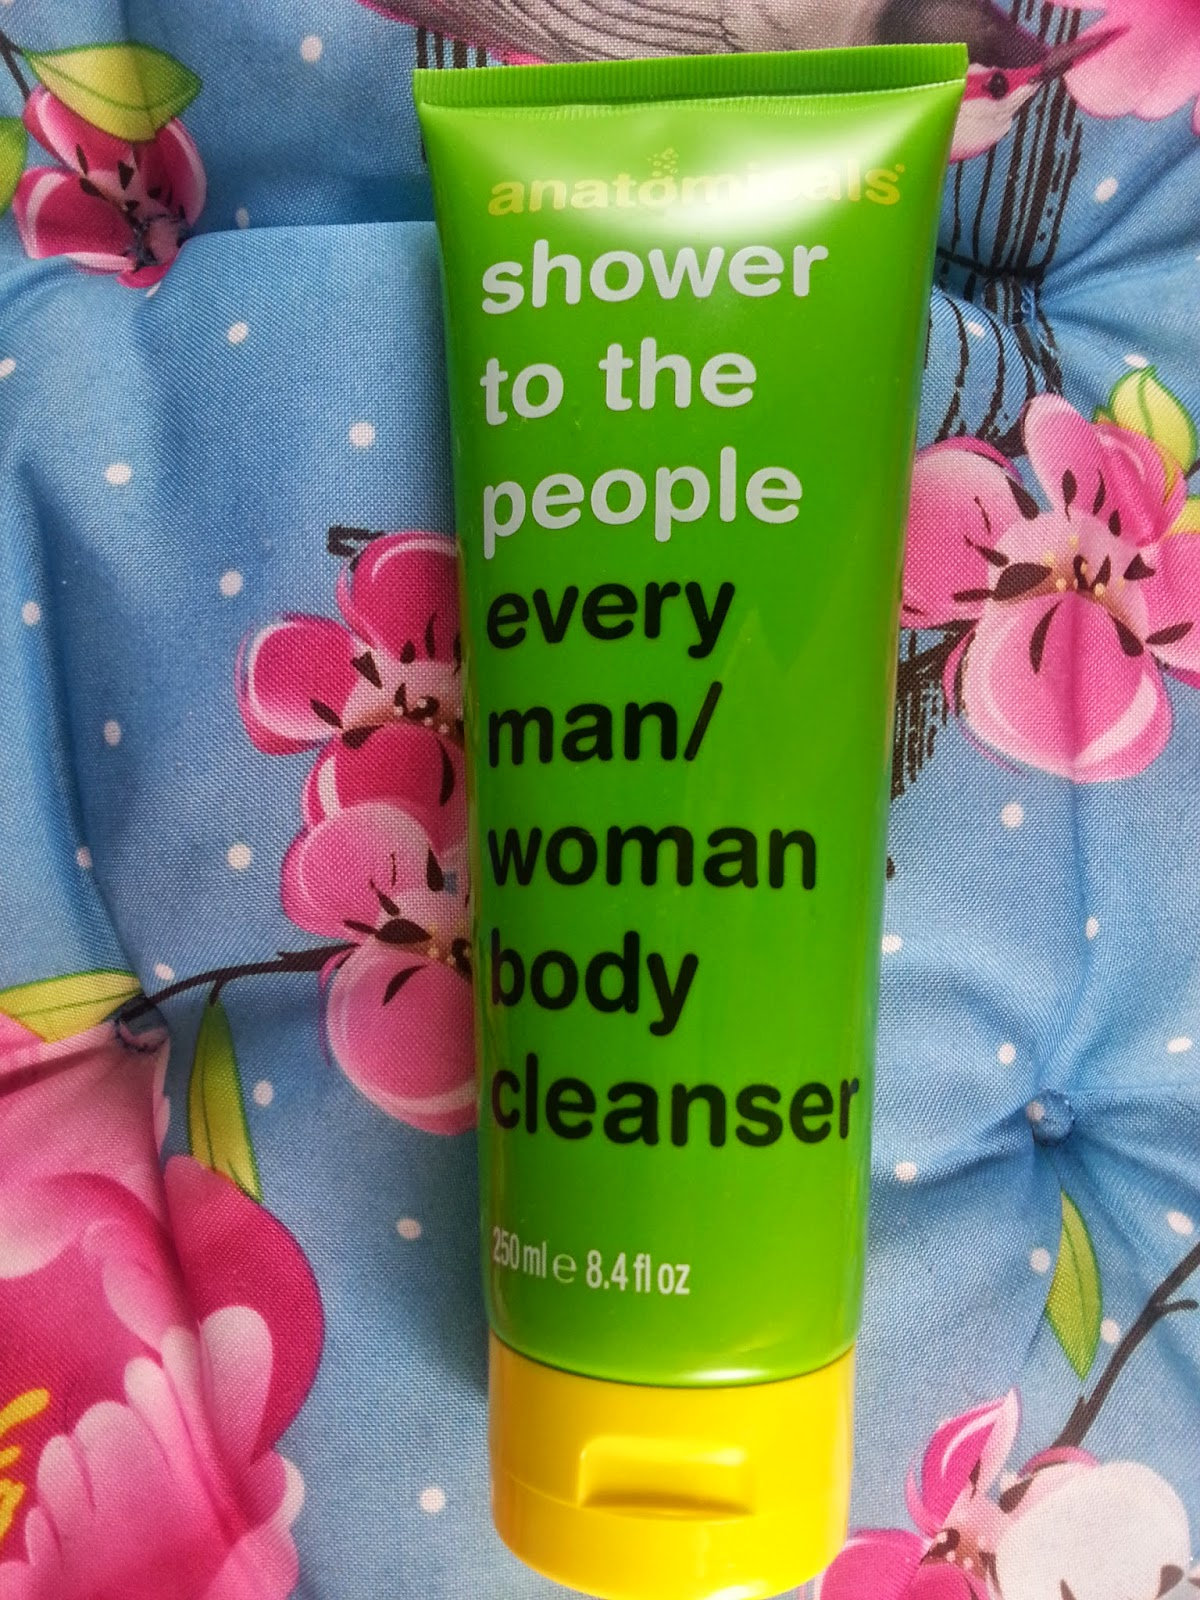 Anatomicals - Shower to the poeple every Man/Woman Body Cleanser - www.annitschkasblog.de